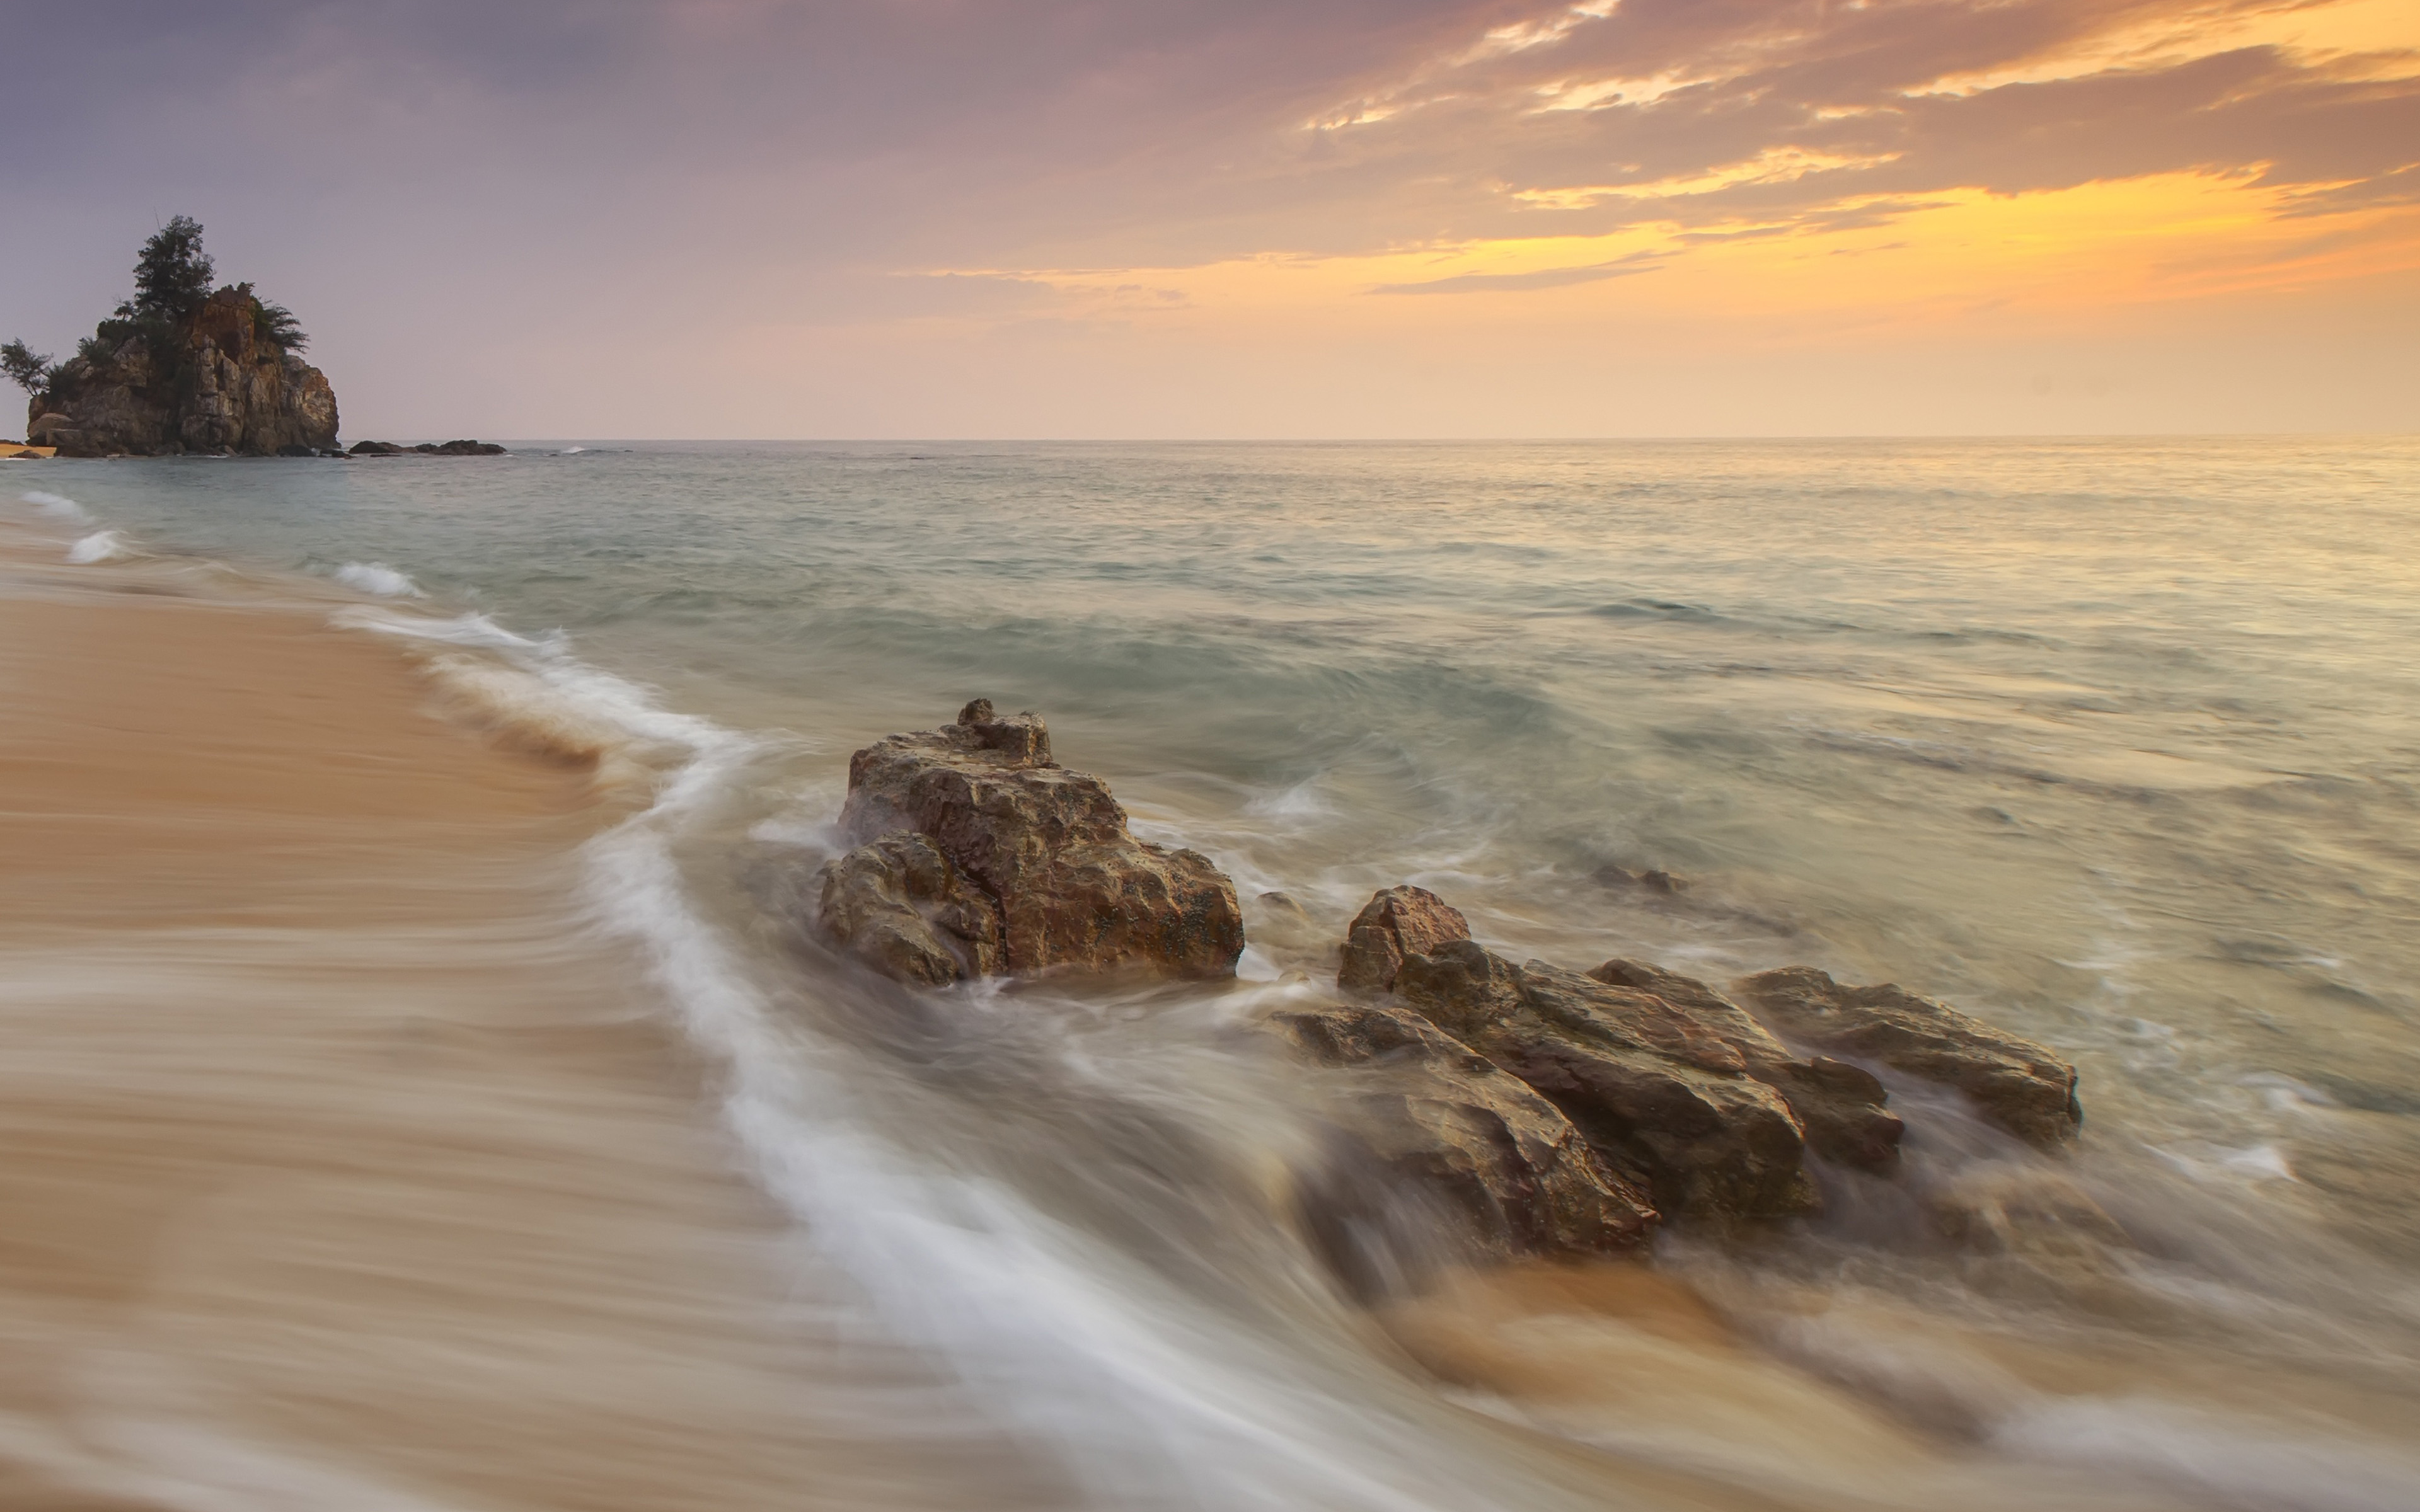 np85-sea-relax-vacation-beach-sunset-nature